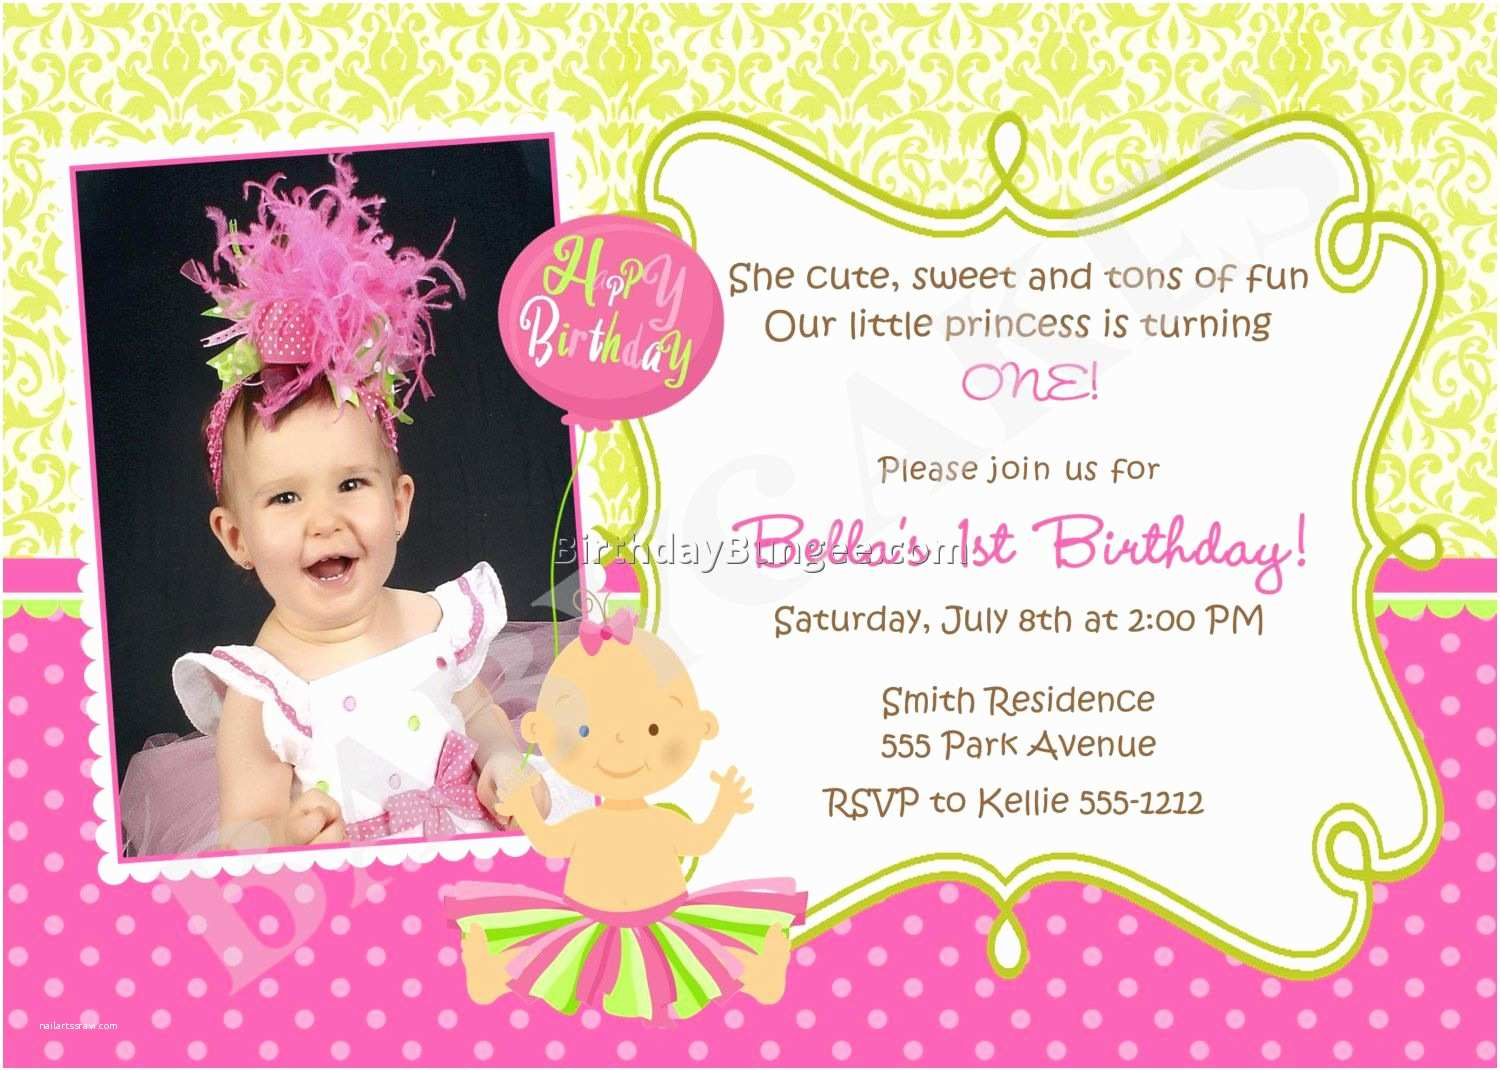 Party Invitation Examples 21 Kids Birthday Invitation Wording that We Can Make